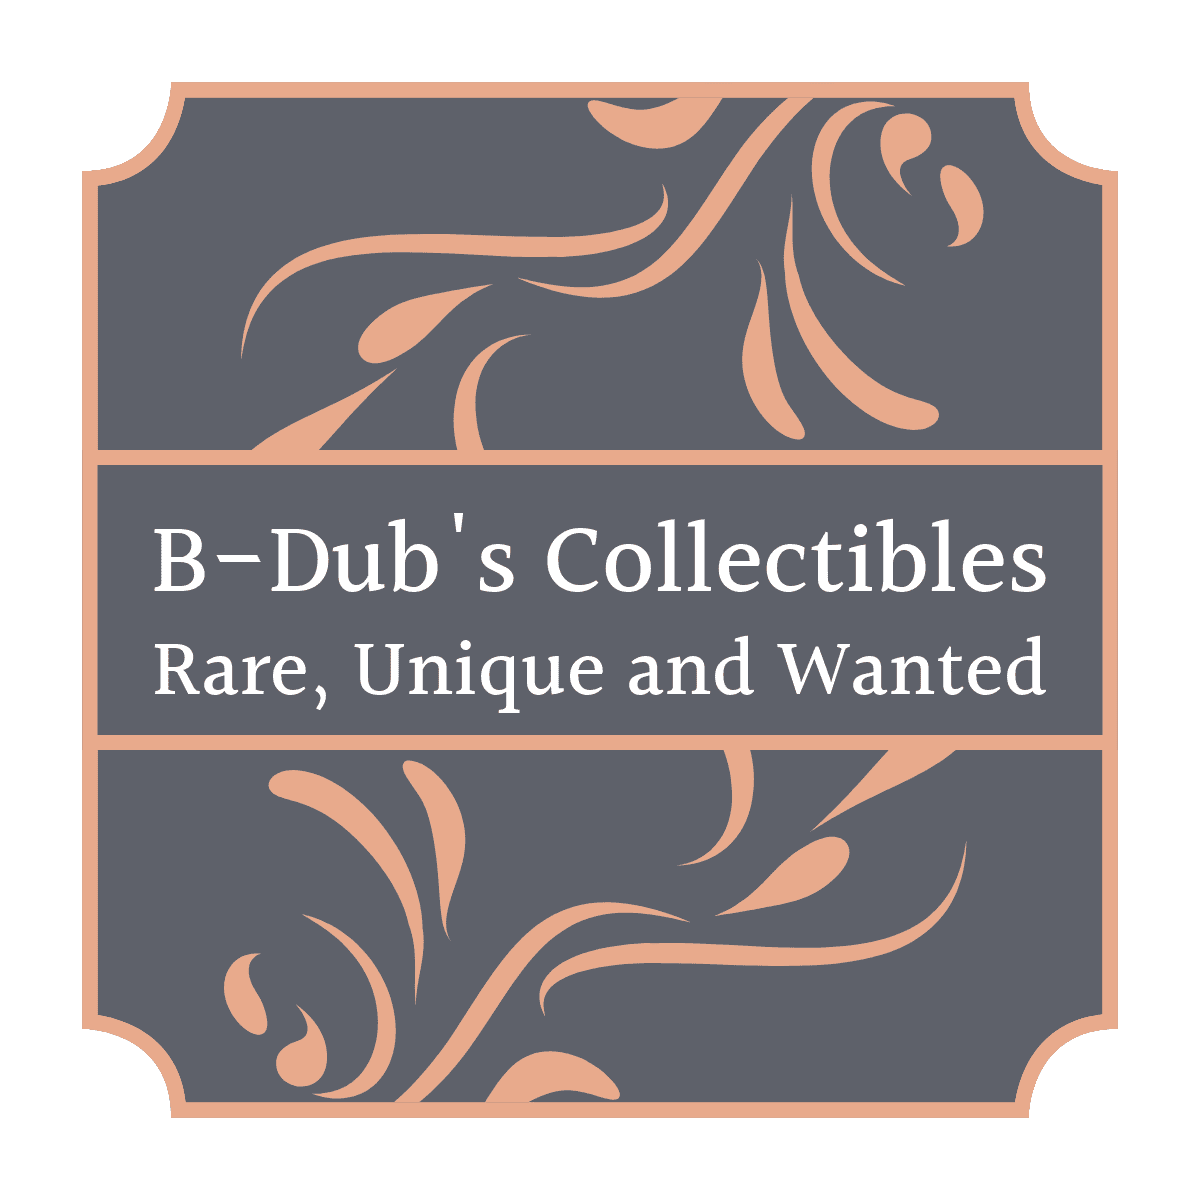 B-Dub's Collectibles